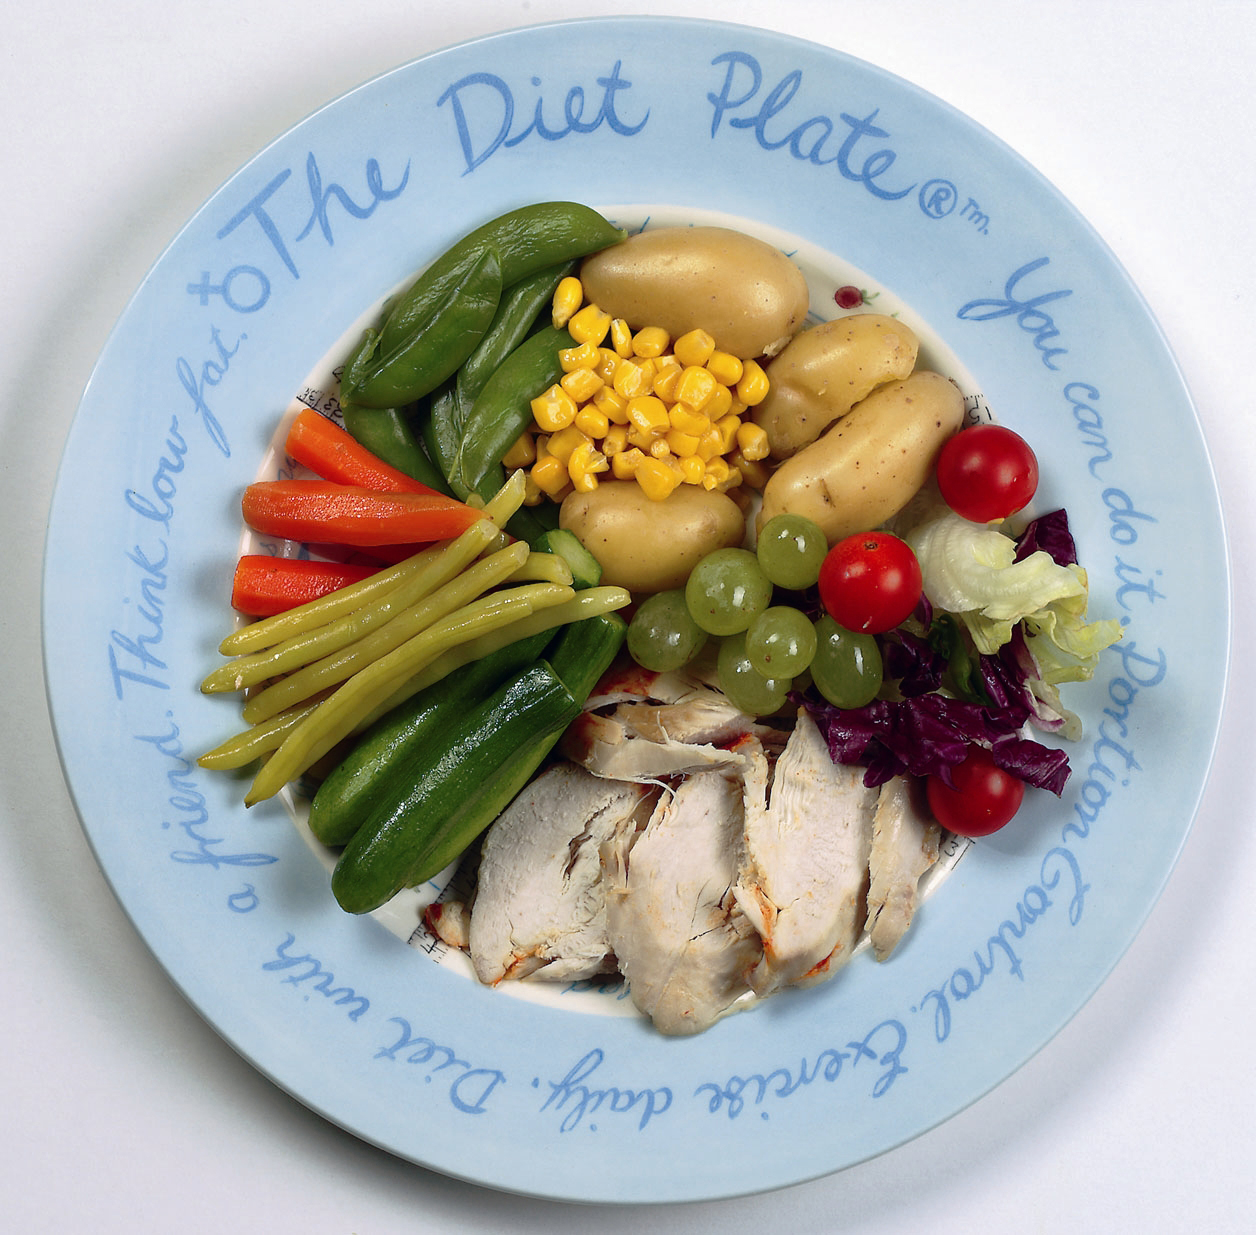 An example of a meal that's perfectly proportioned on the Diet Plate. Image: The Diet Plate